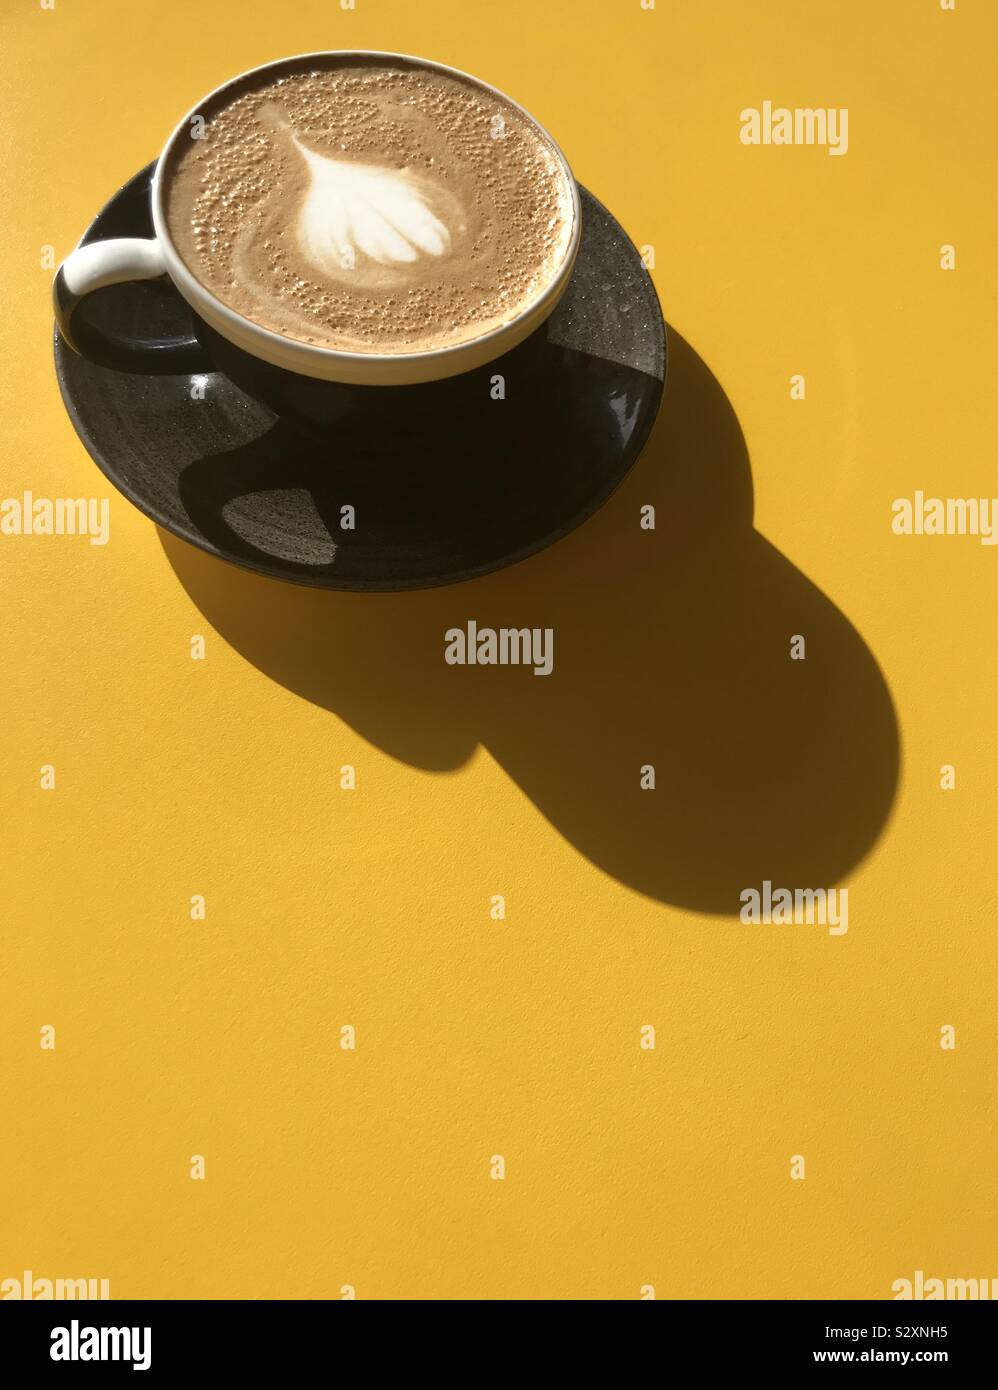 Kaffee in der Sonne casting graphic Schatten Stockfoto